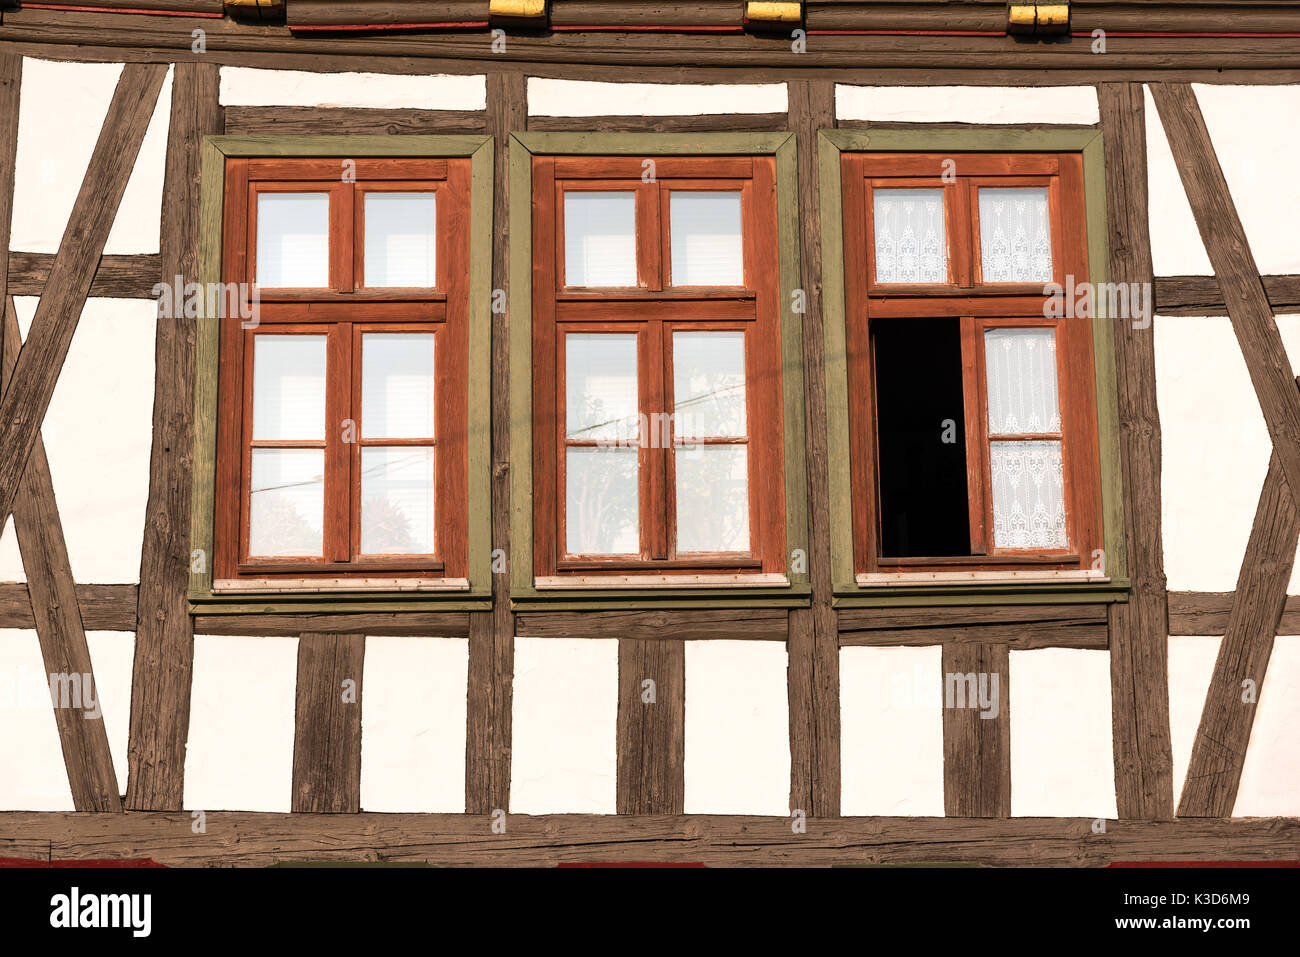 Windows of a traditional half timbered house seen in Germany - Stock Image